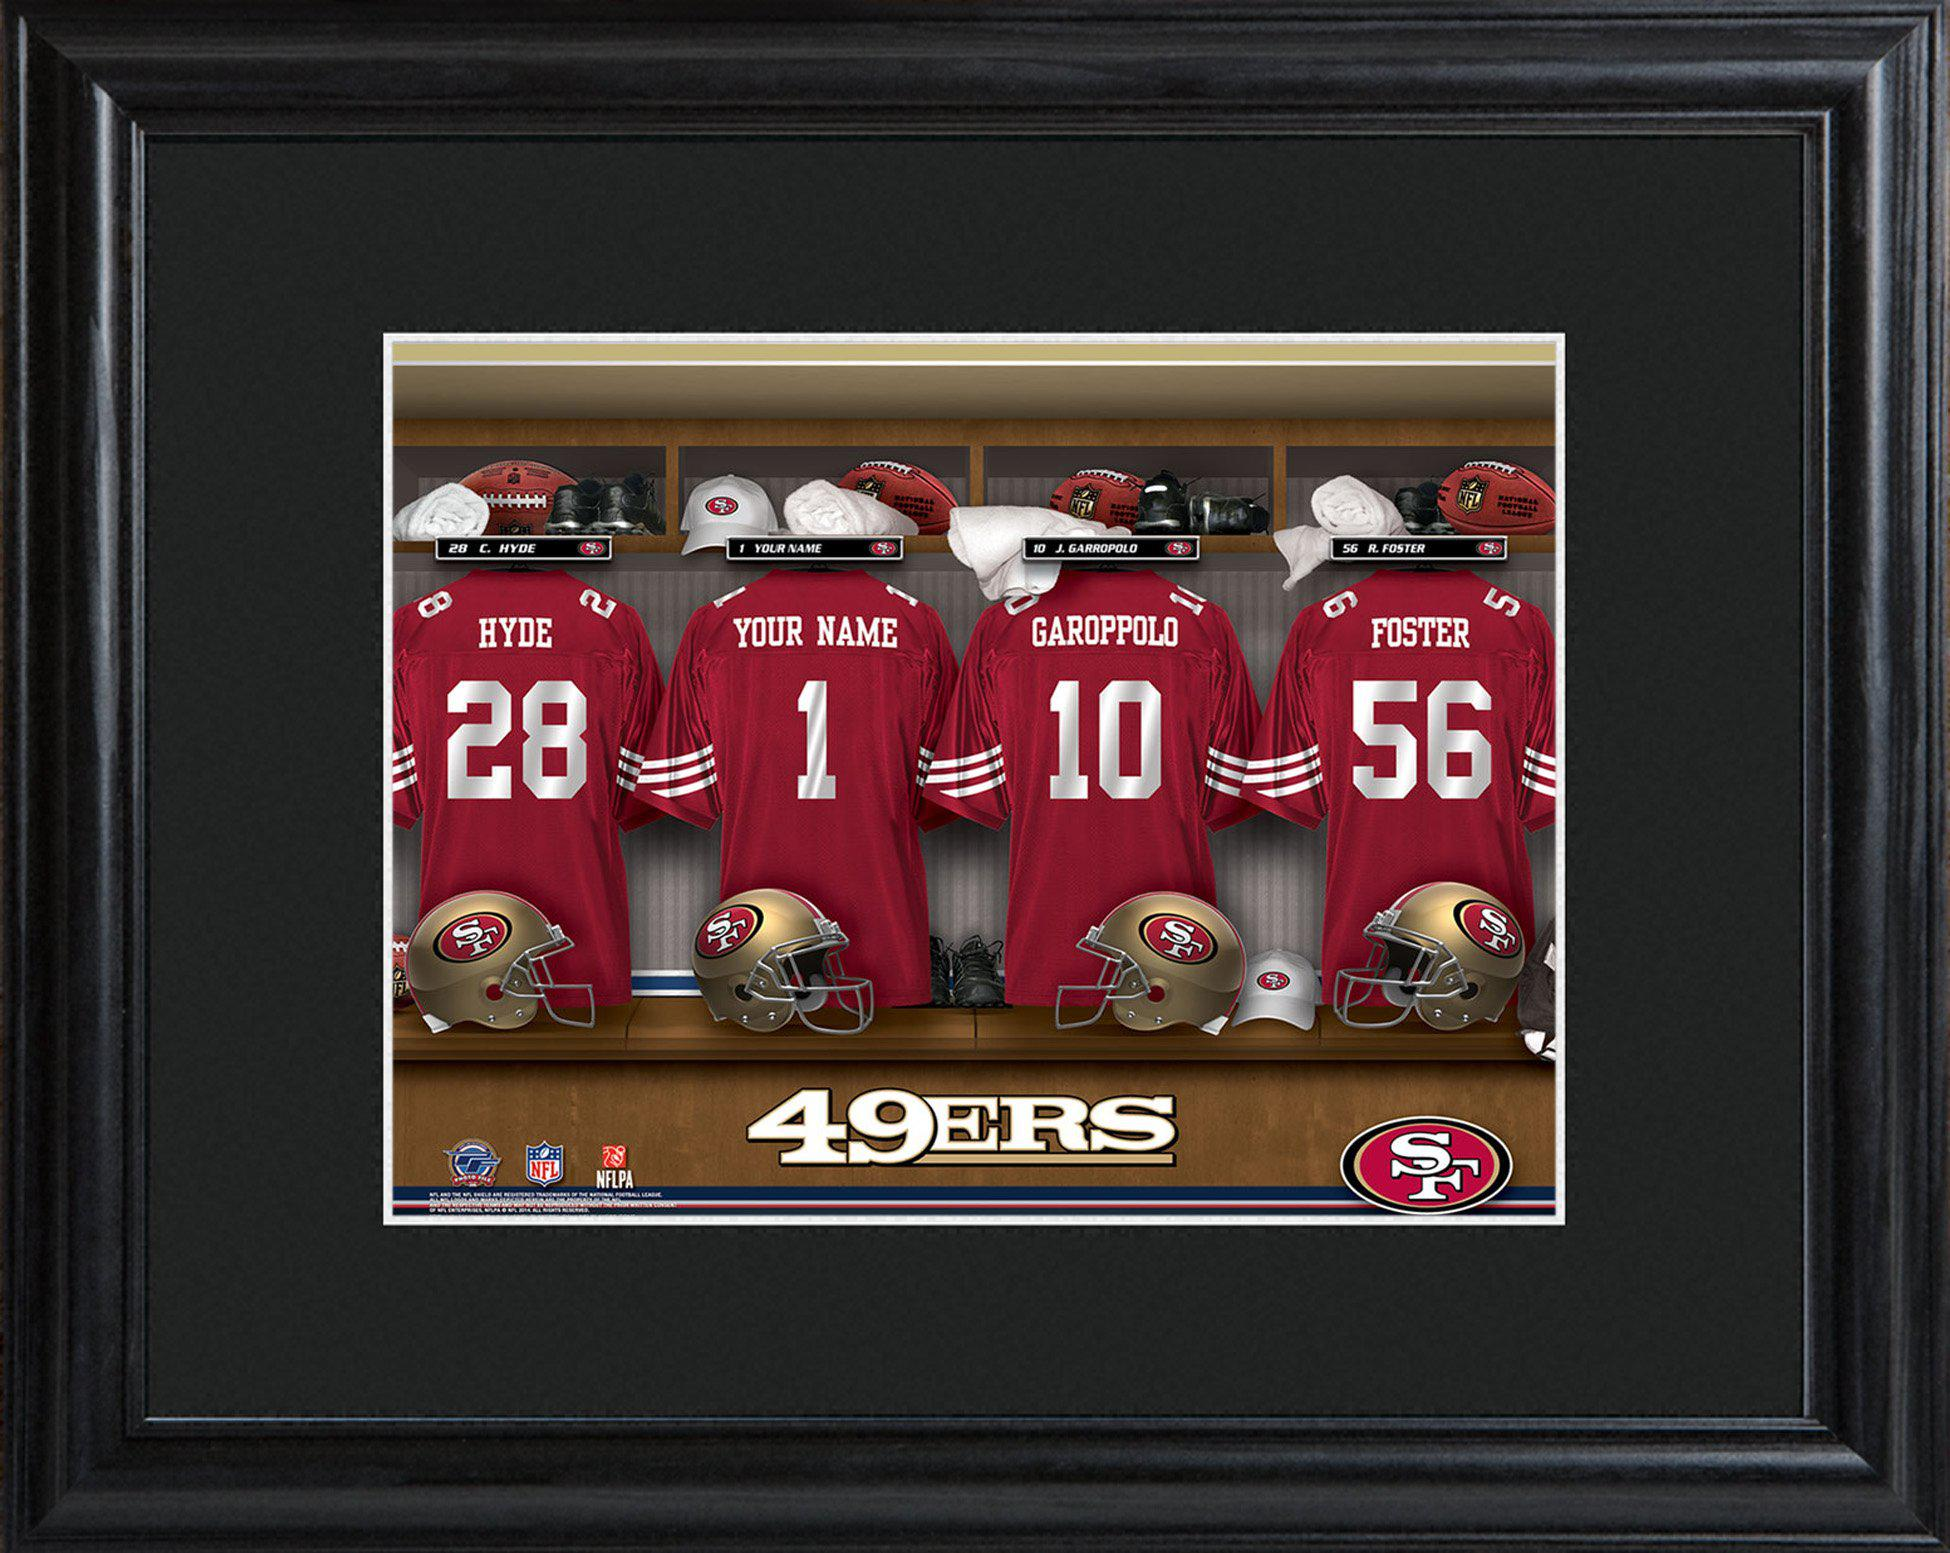 Personalized Nfl Man Cave Signs : Personalized bar and pub signs for groomsmen gifts